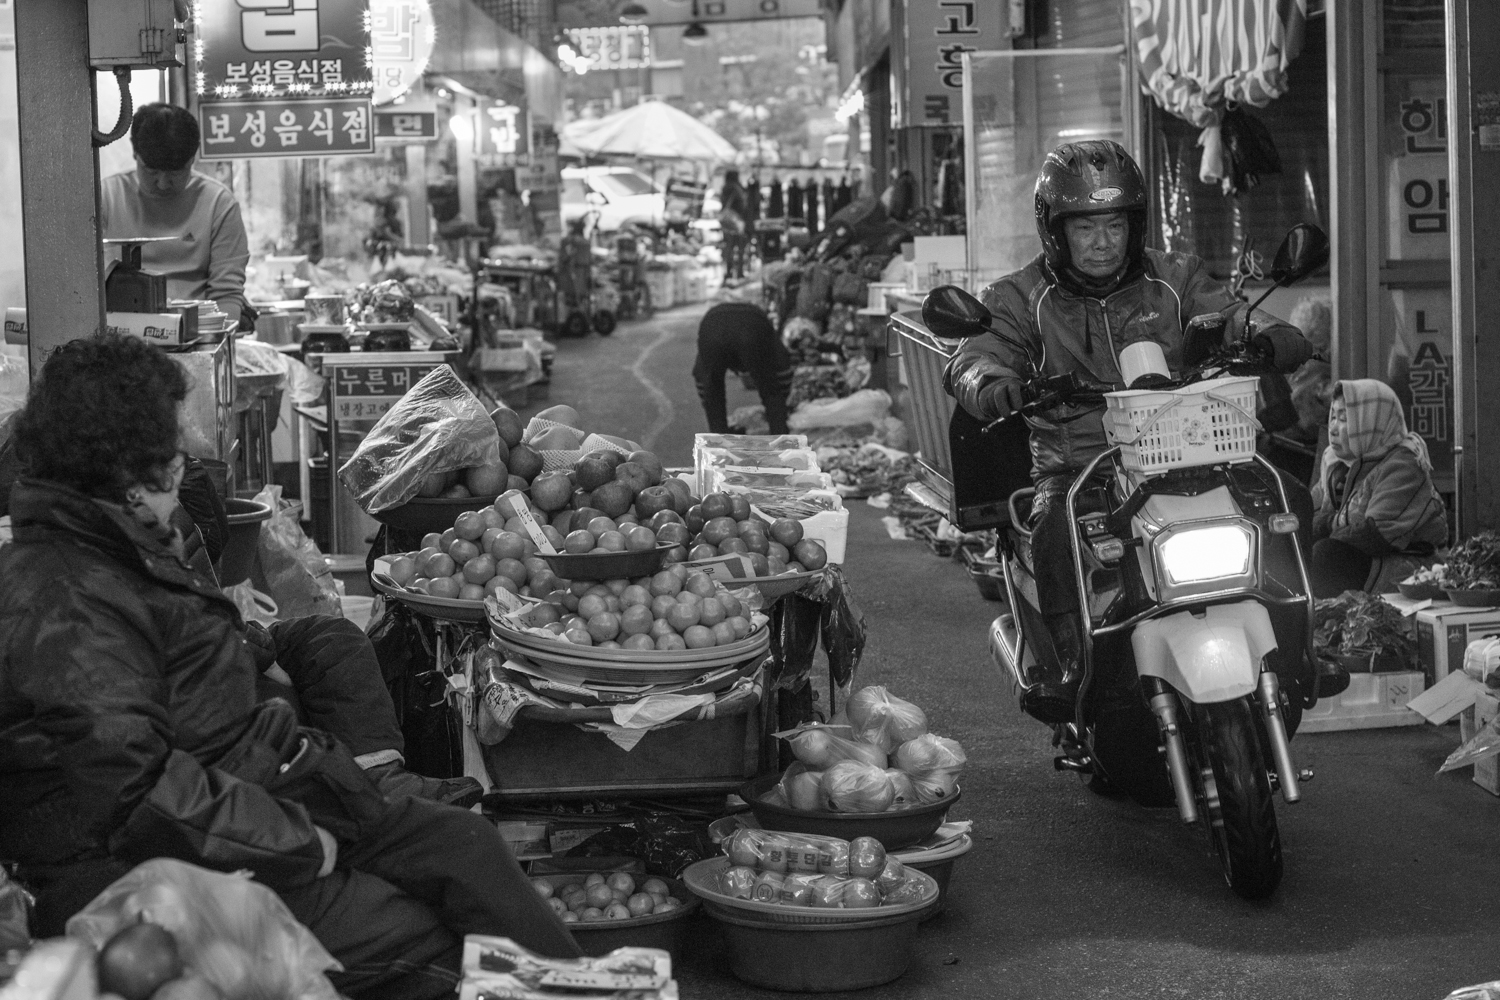 Though the streets through the markets are actually quite wide, many merchants display their wares in the road itself, thus choking them to narrow, winding paths. Despite little room for error, motorcycle-delivery men cruise through at breakneck speeds. No one in the market bats an eye.